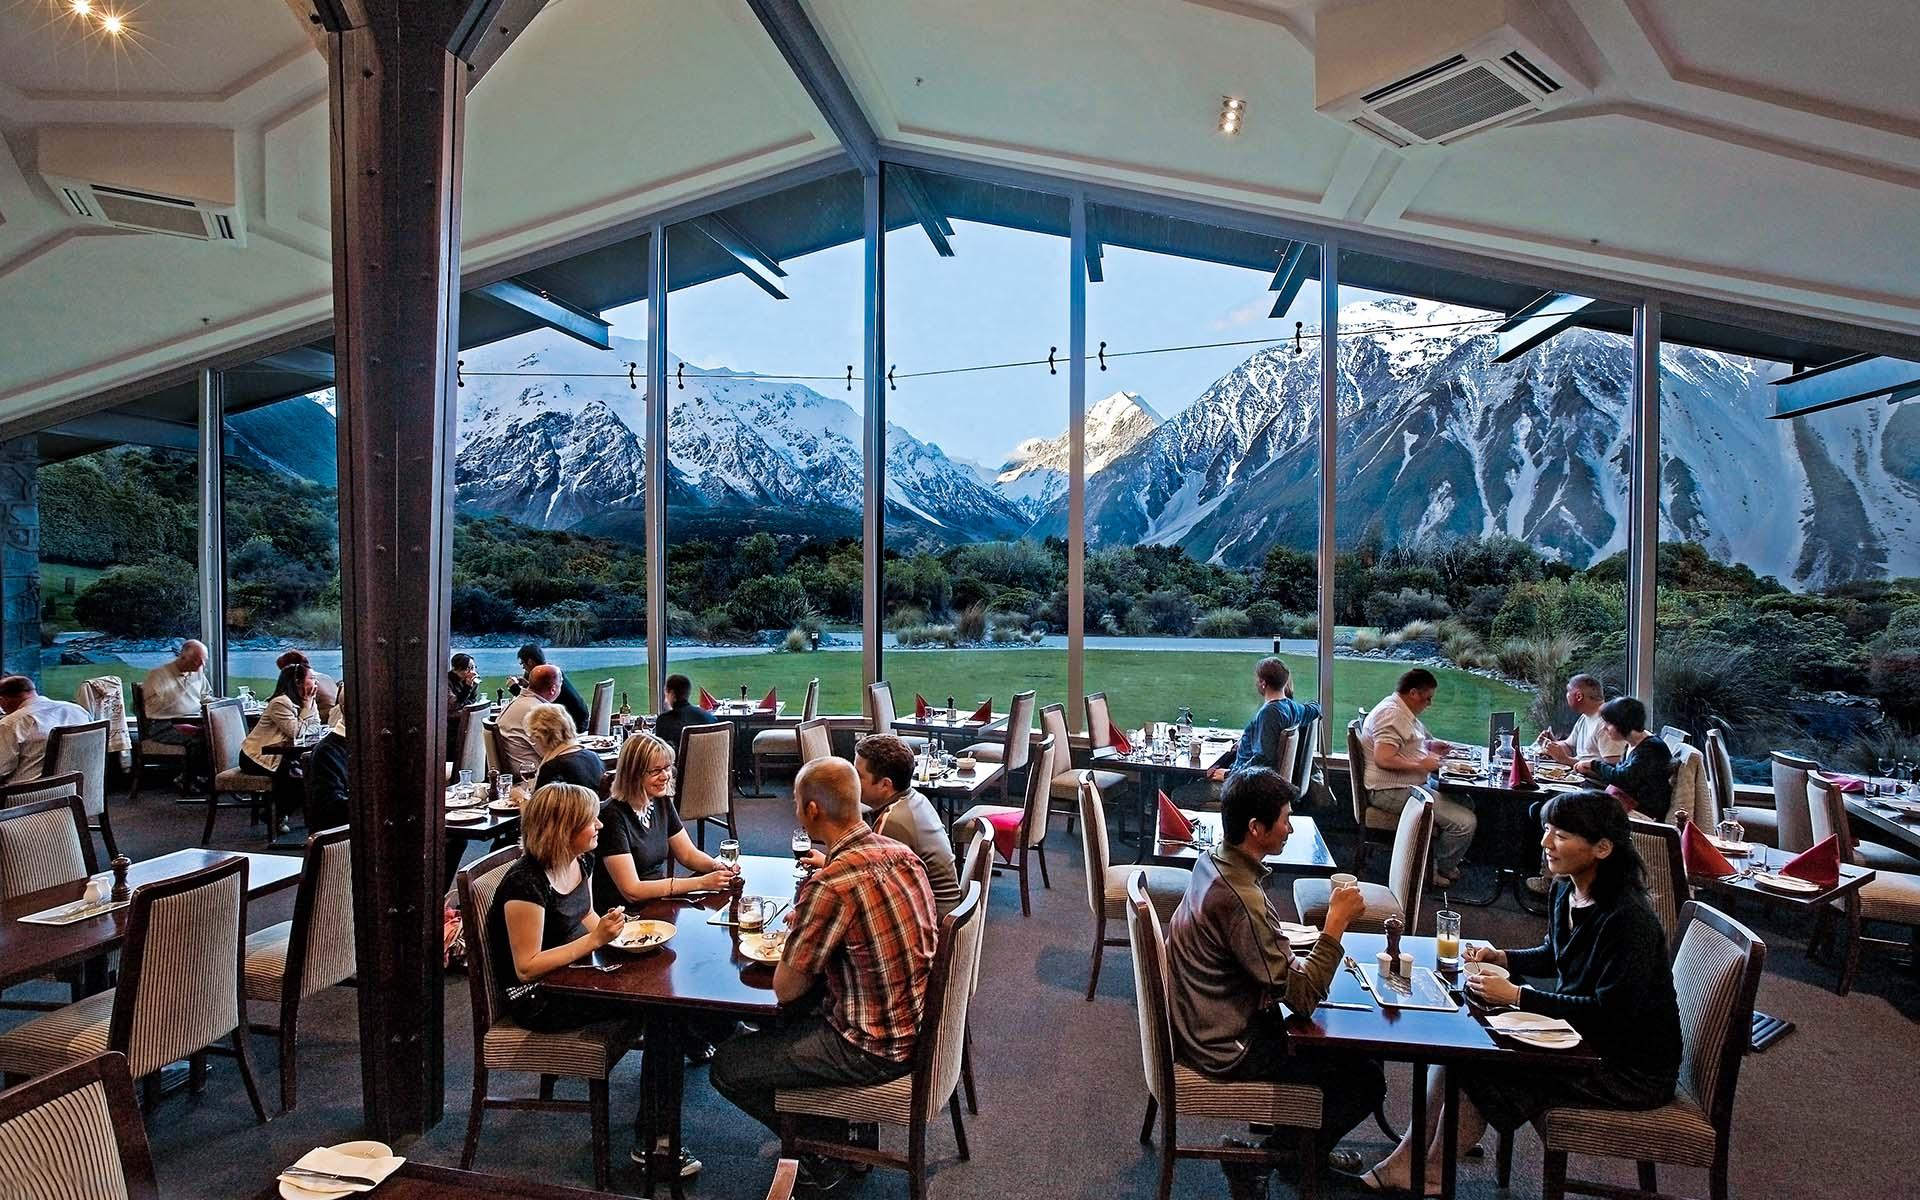 The Old Mountaineer's Cafe